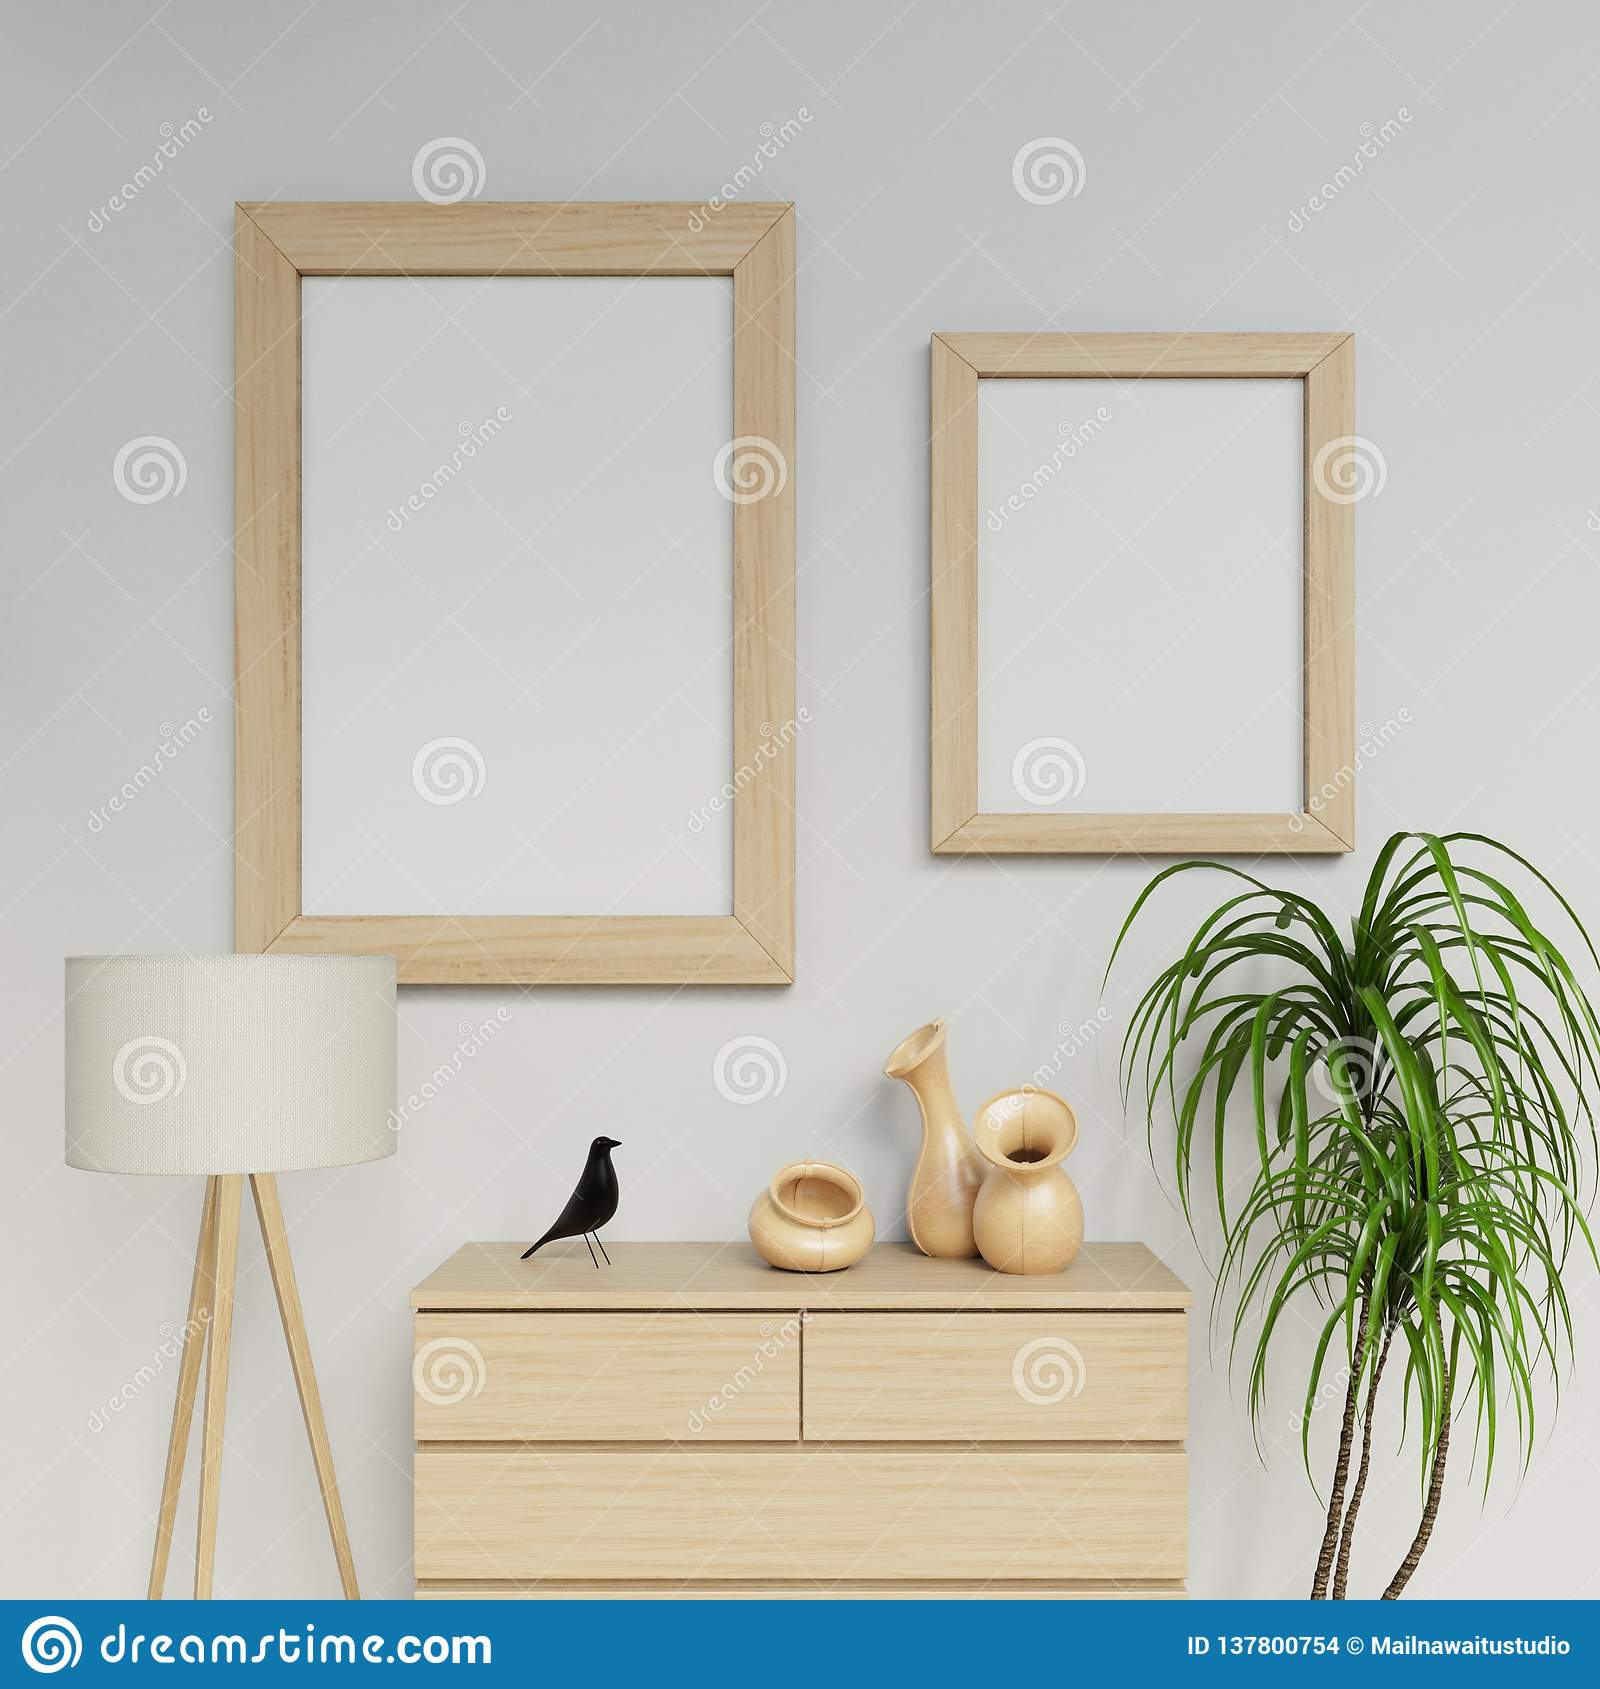 A2 White Frame Clean Interior Space 3d Rendering Of Two A1 And A2 Poster Mockup